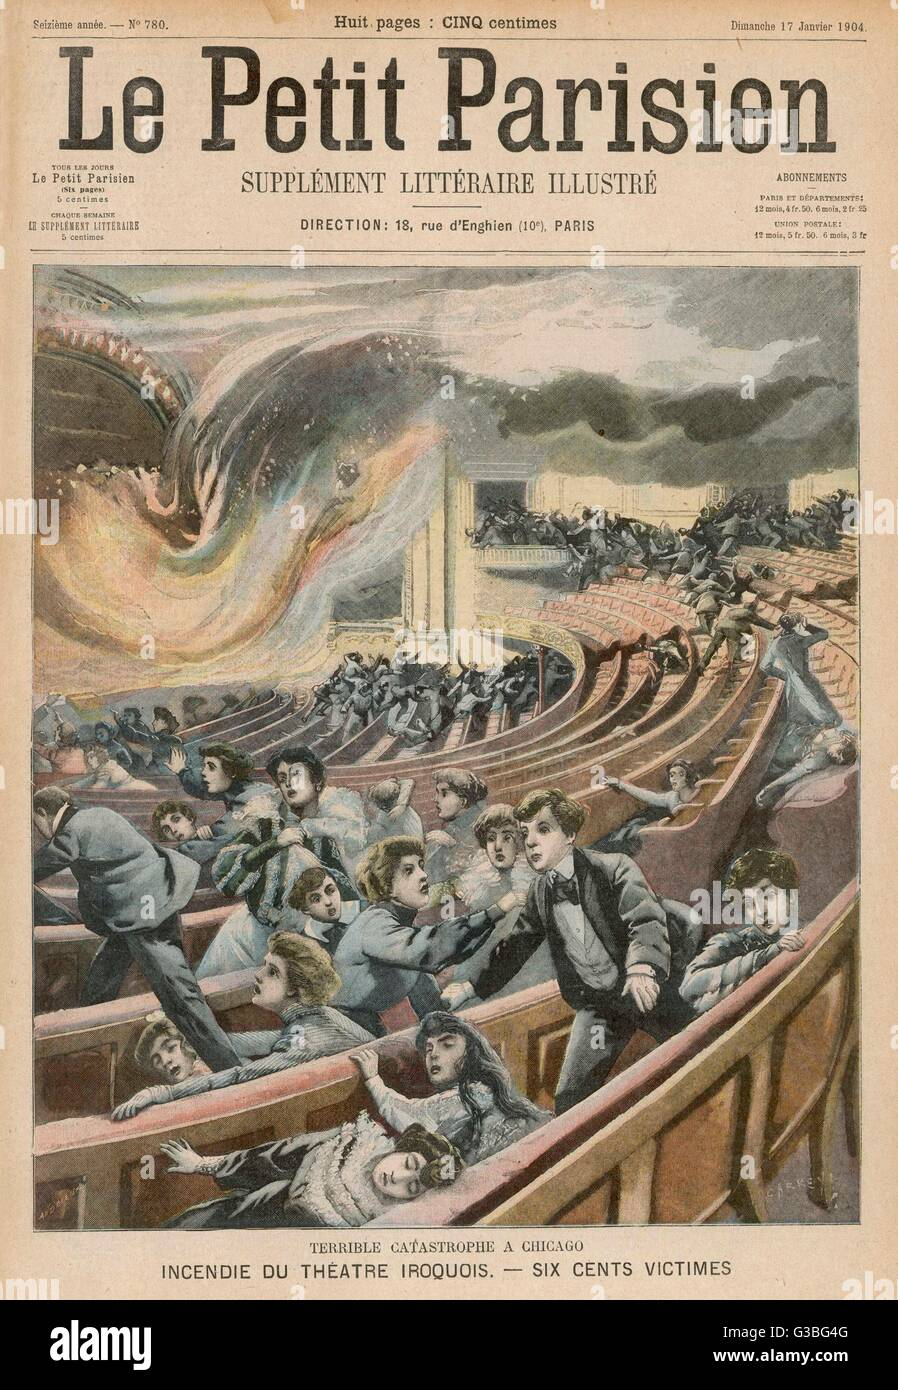 600 people die when the  Iroquois Theatre, Chicago,  burns        Date: 1904 - Stock Image